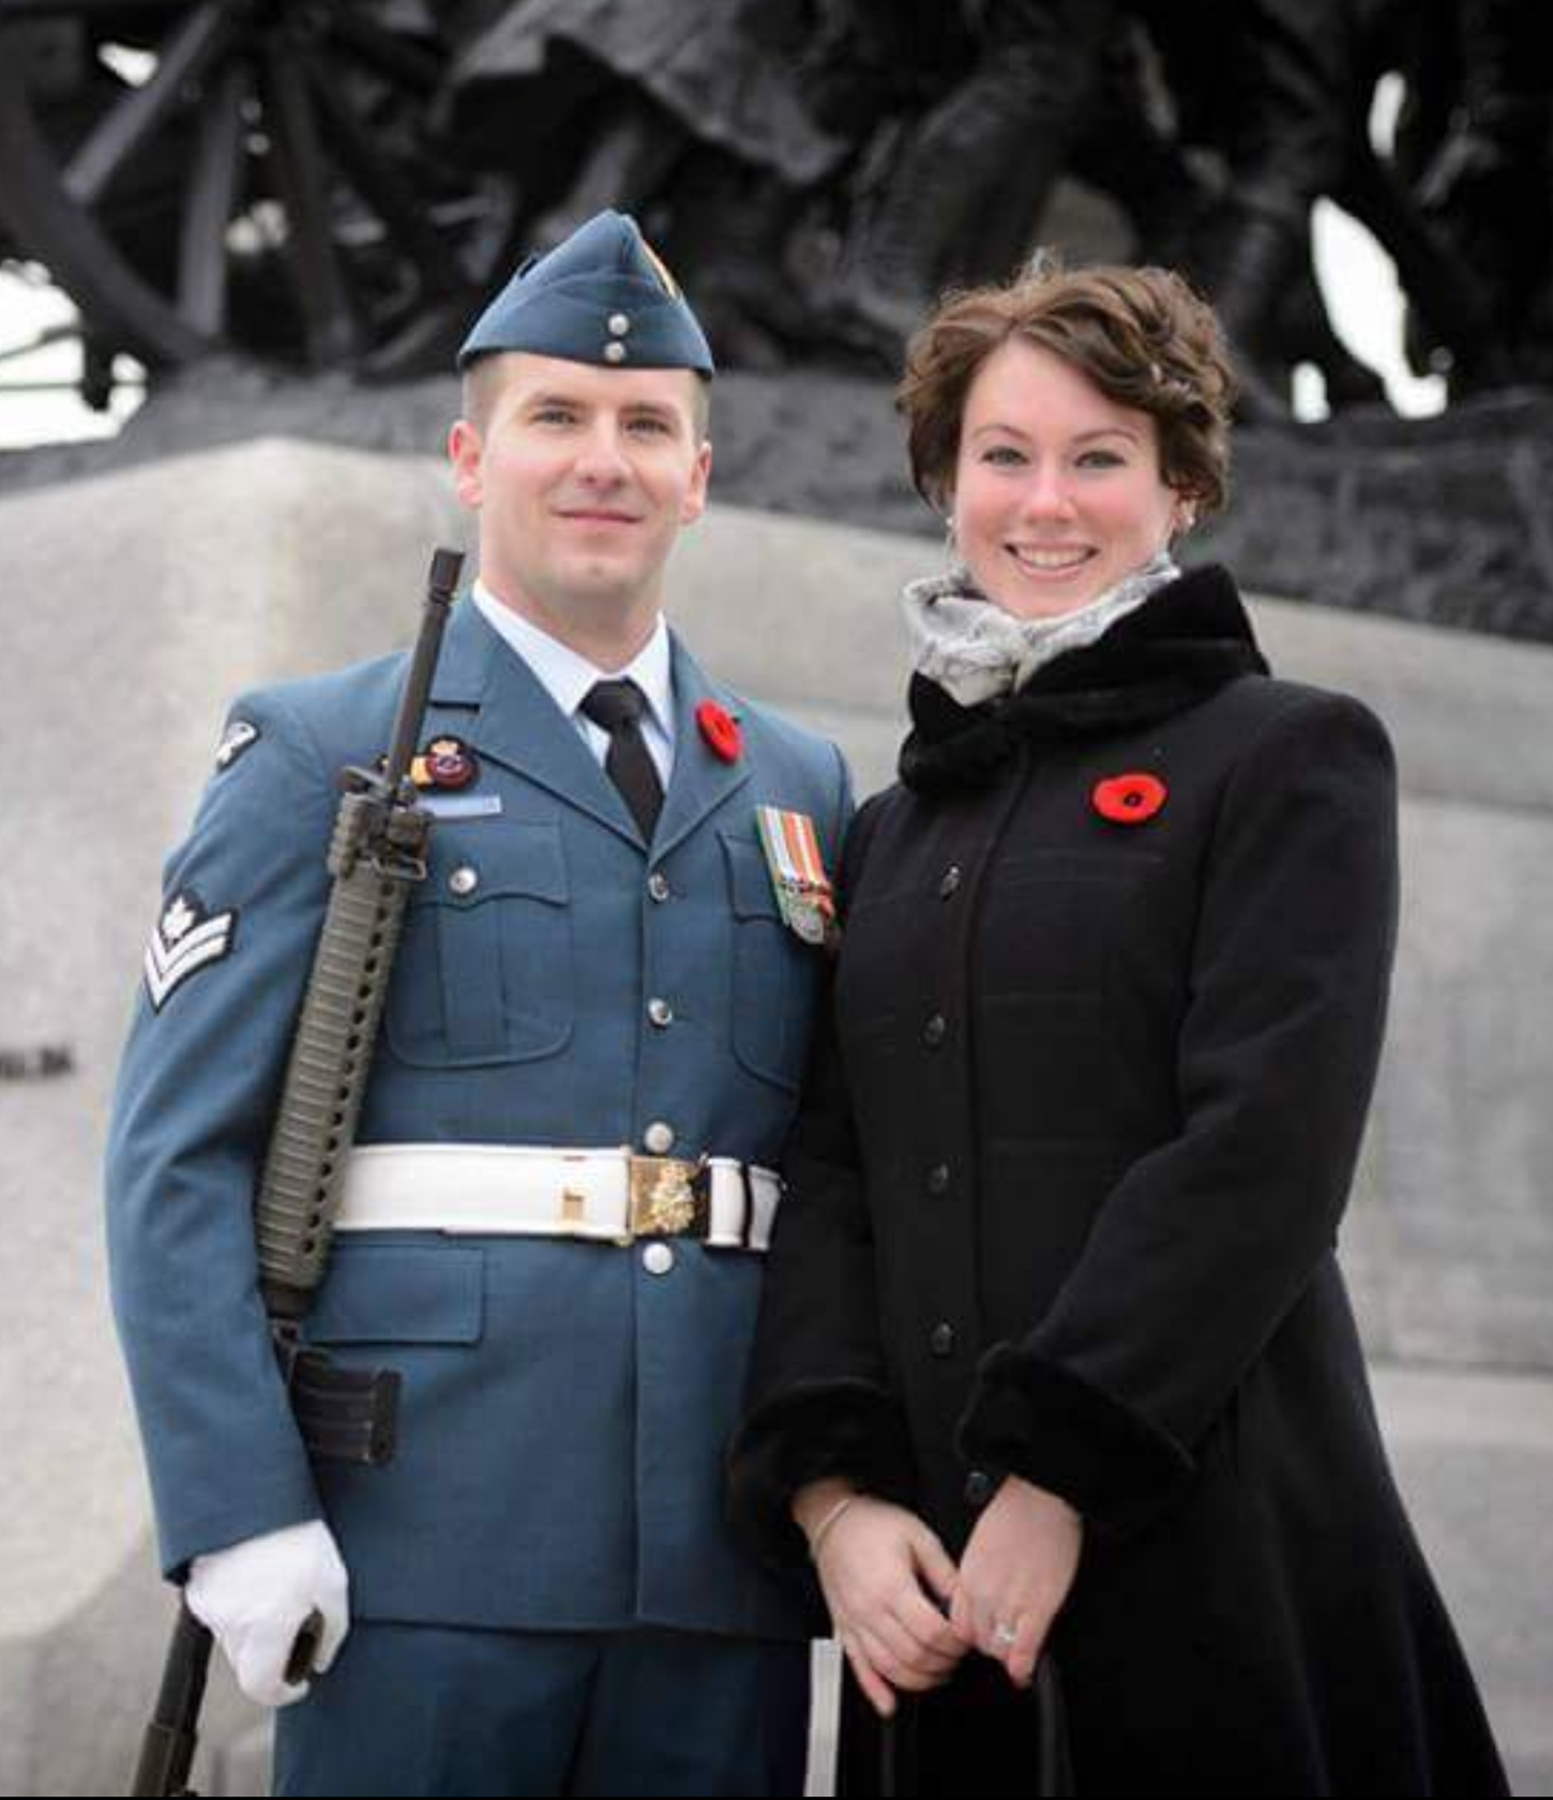 Le caporal-chef George Arsenault, sentinelle de l'Aviation royale canadienne, et sa femme Emily se tiennent devant le Monument commémoratif de guerre du Canada, à Ottawa, en Ontario, avant la cérémonie du jour du Souvenir de 2016. PHOTO : Caporal Michael MacIsaac